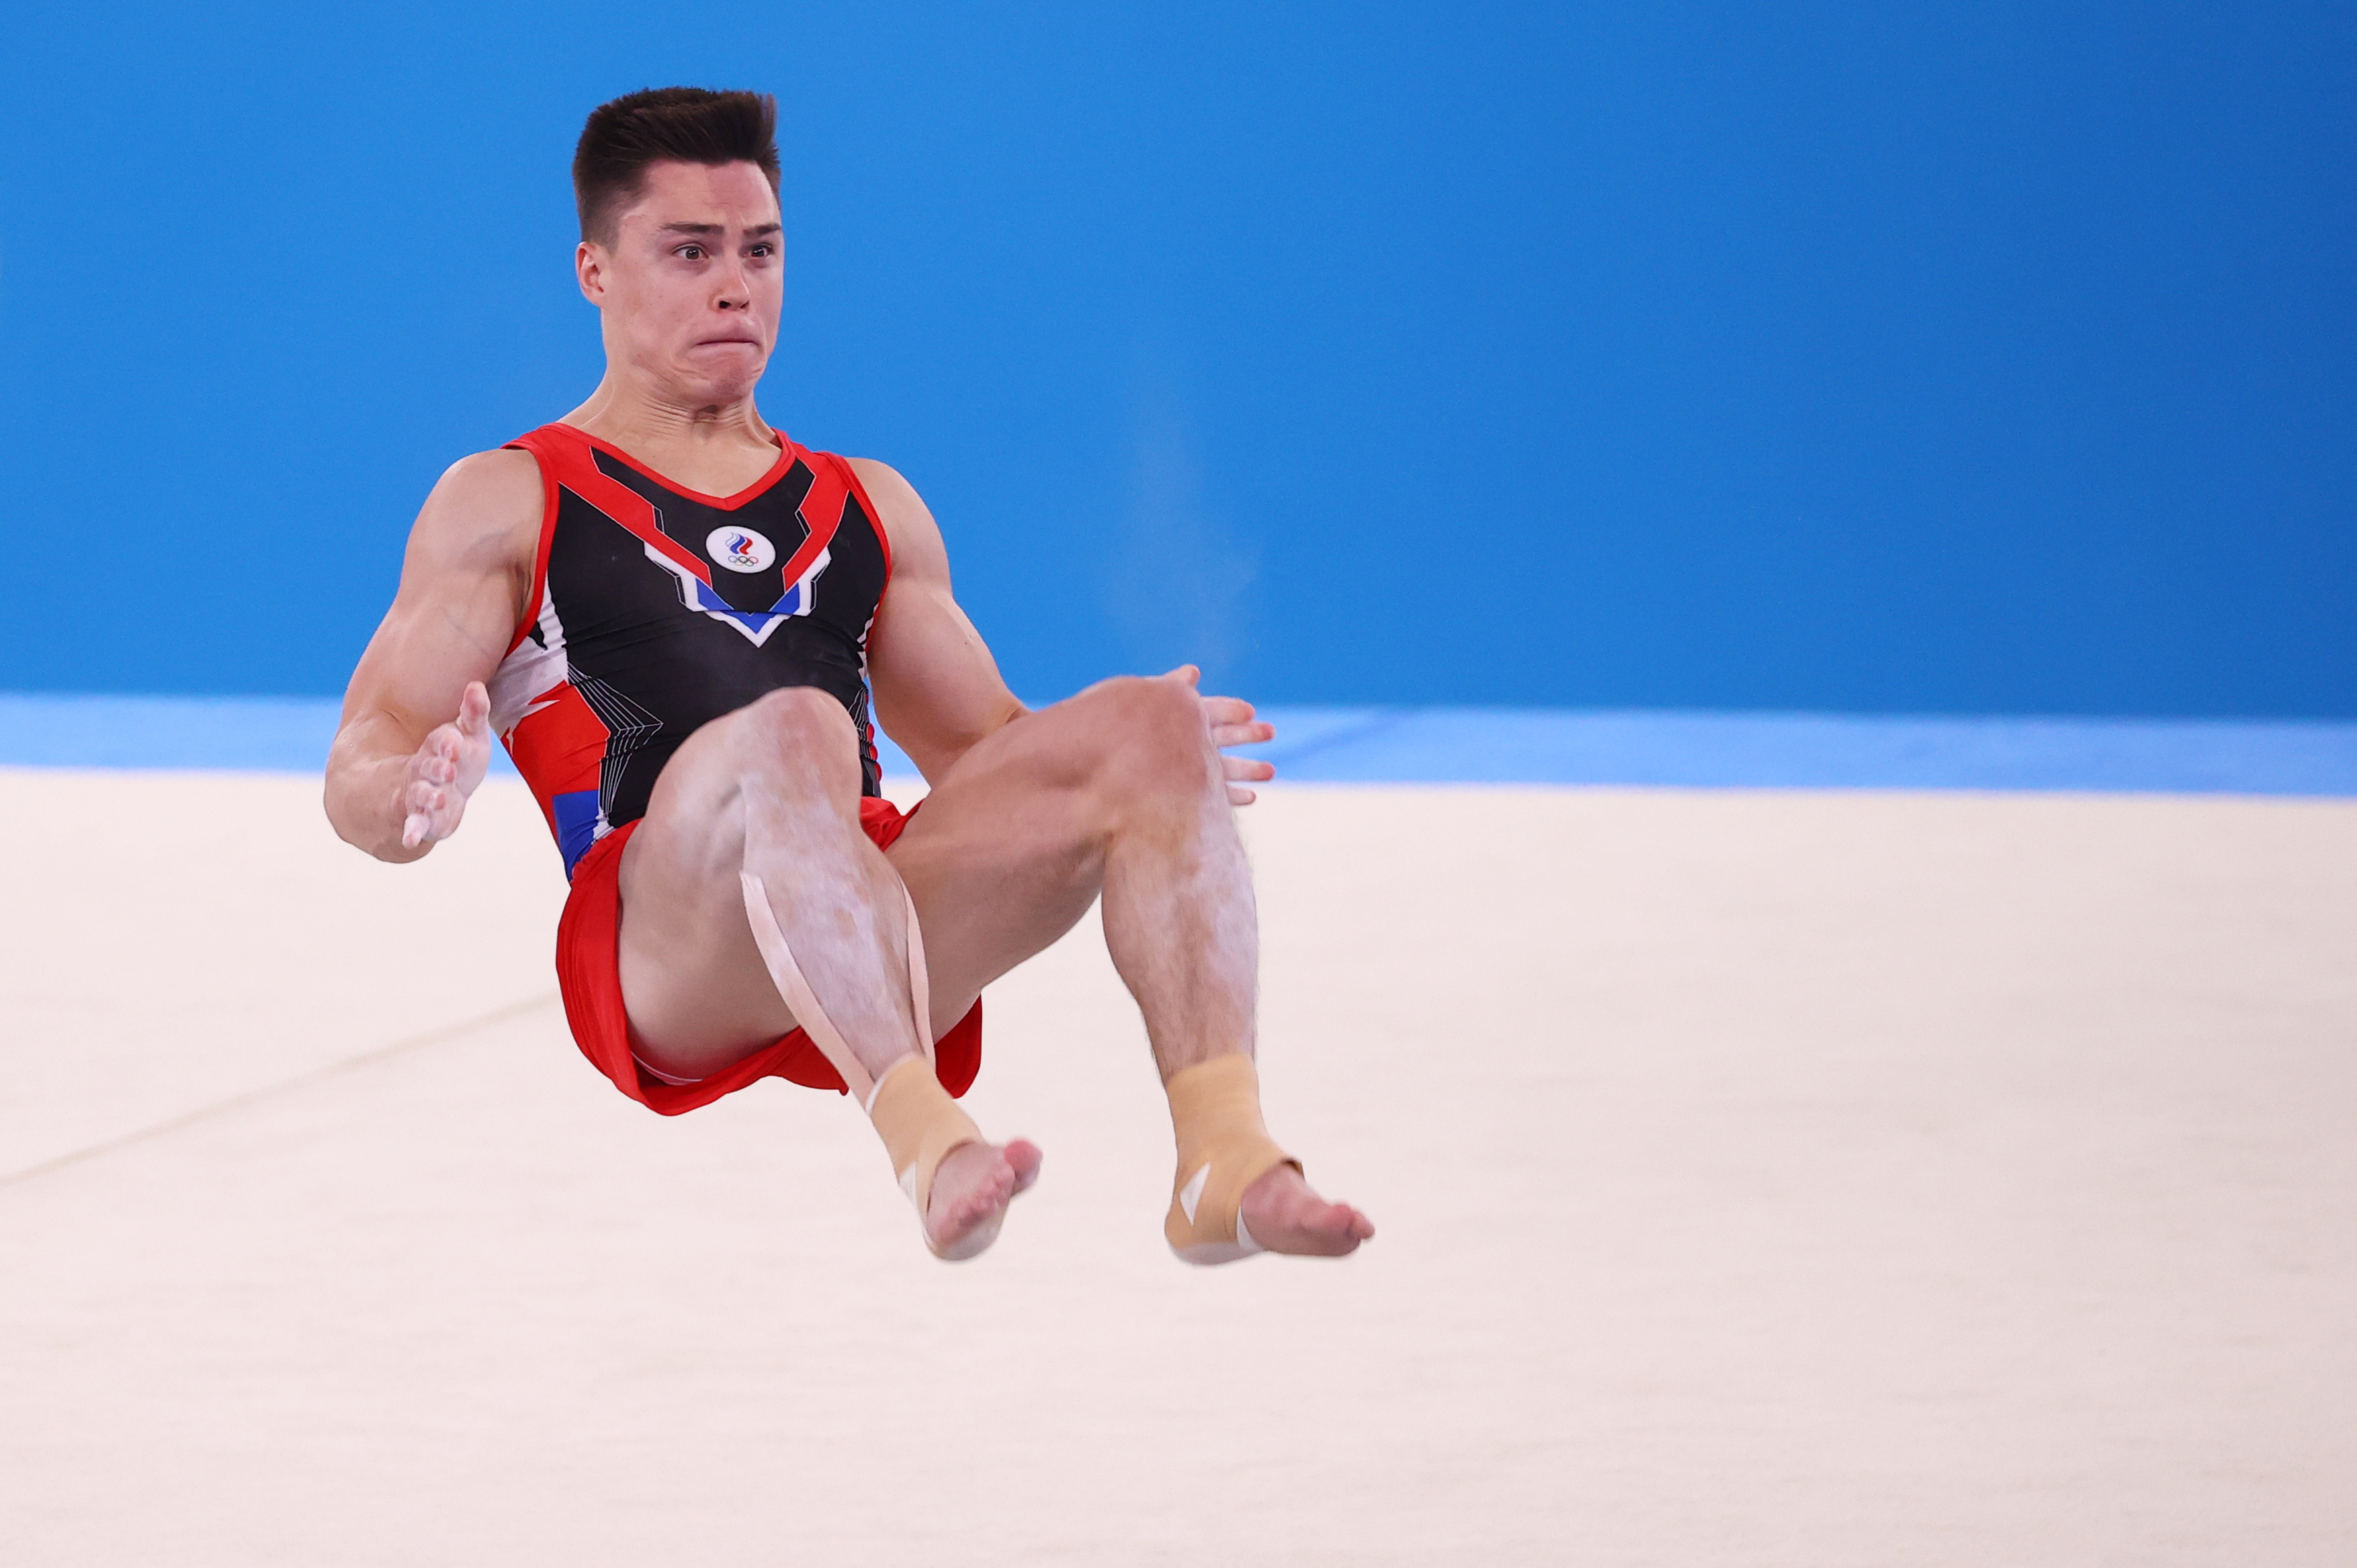 Tokyo 2020 Olympics - Gymnastics - Artistic - Men's Floor Exercise - Qualification - Ariake Gymnastics Centre, Tokyo, Japan - July 24, 2021. Nikita Nagornyy of the Russian Olympic Committee in action on the floor. REUTERS/Mike Blake